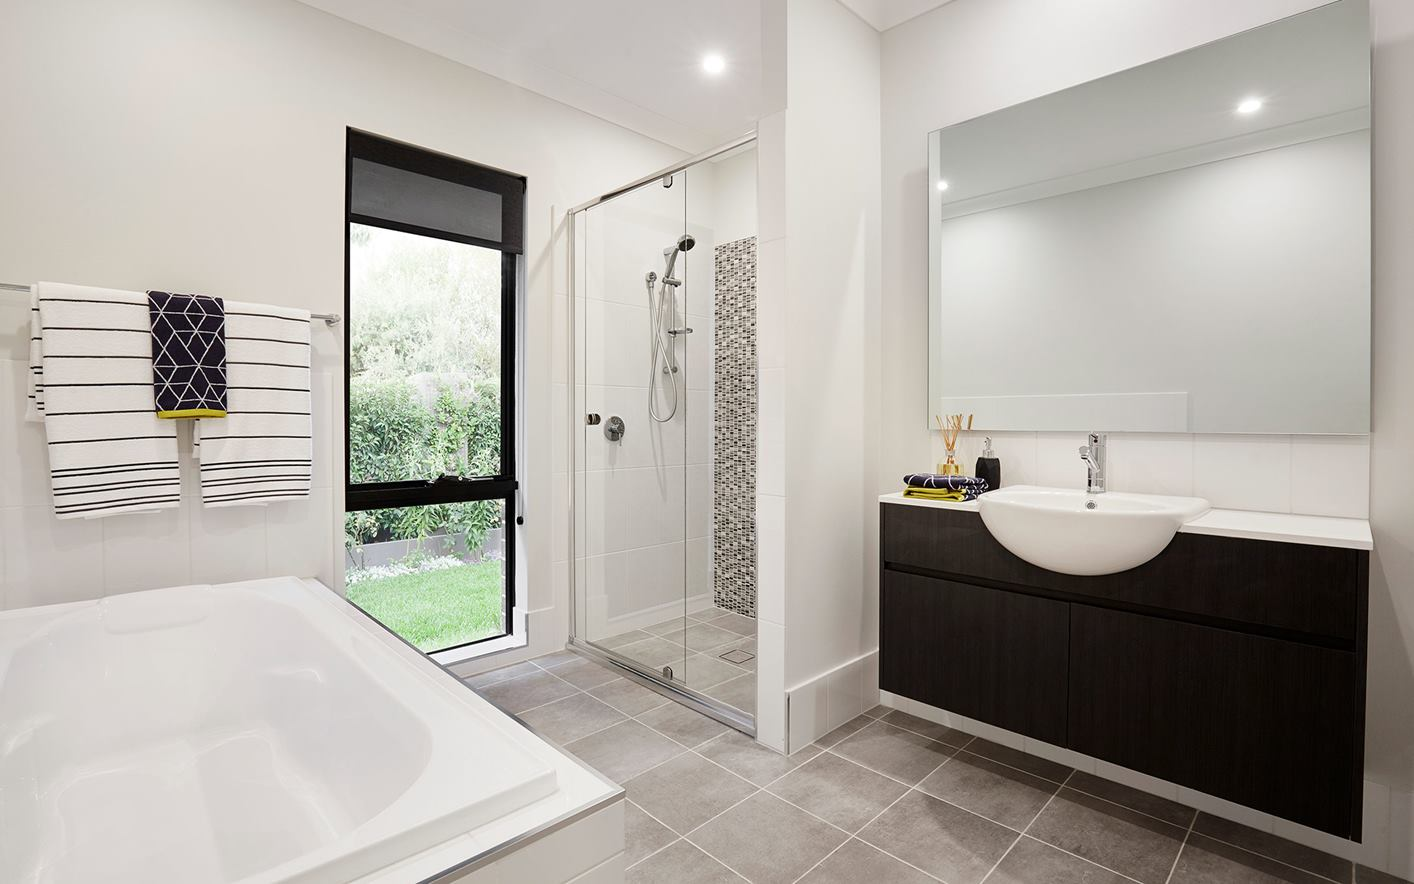 Sienna Home Design Family Bathroom at Airds Display Village